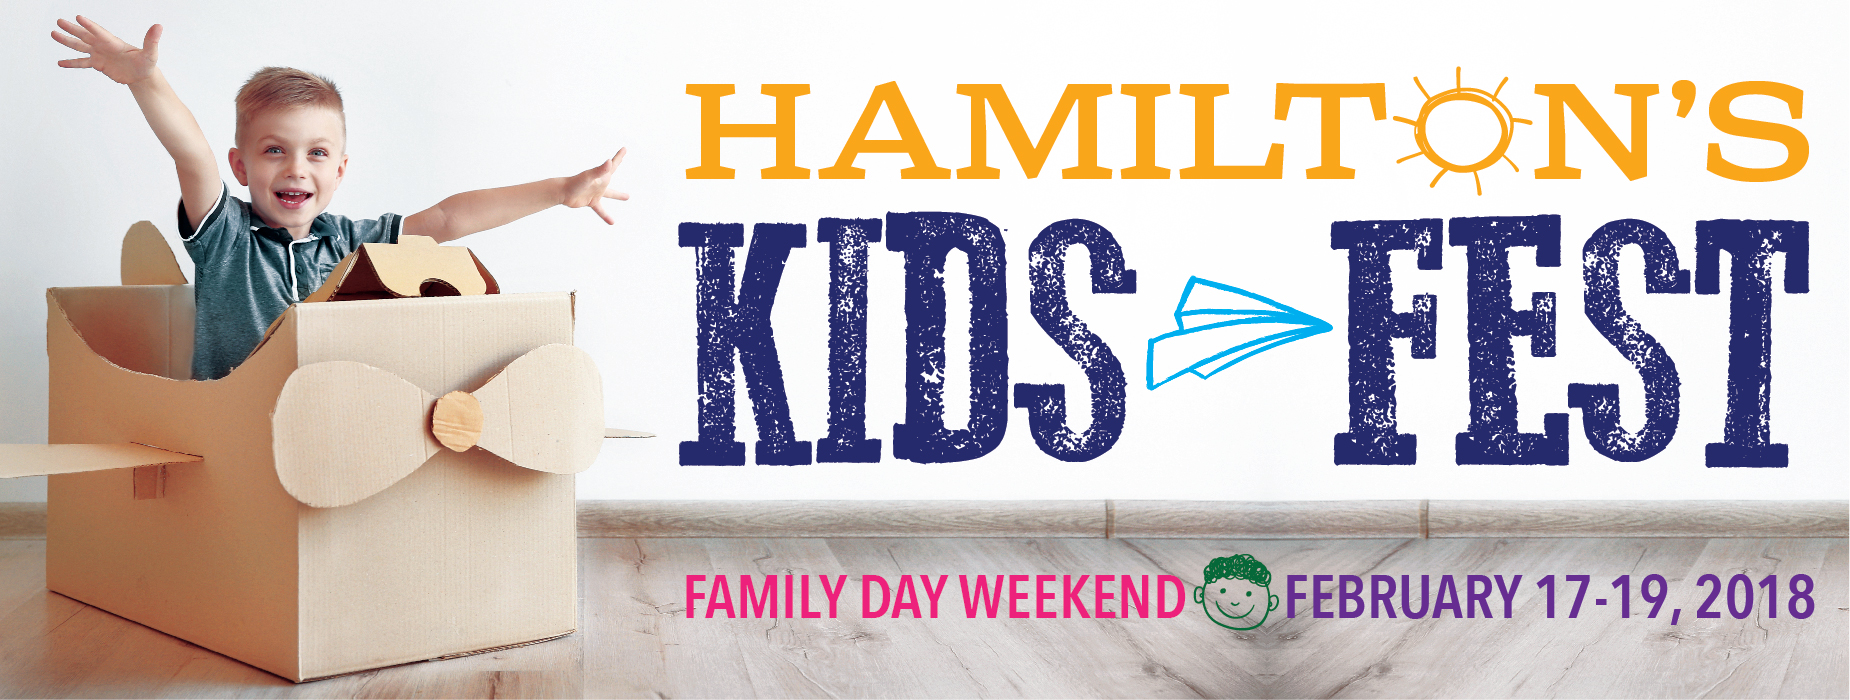 Banner Image for the Hamilton